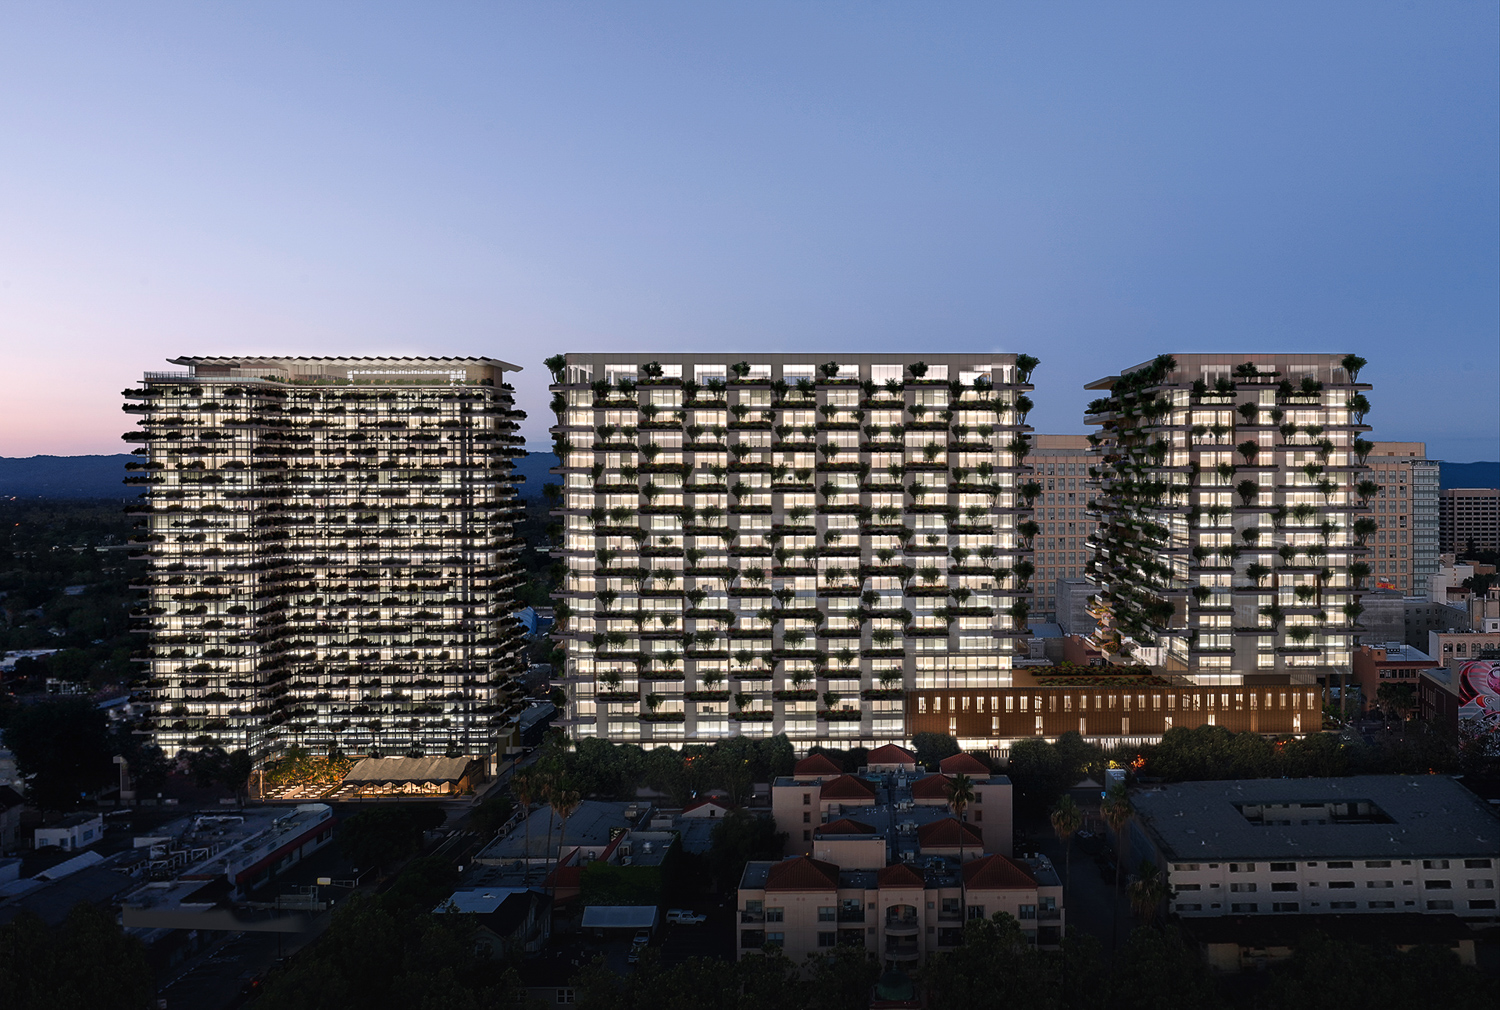 300 South 1st Street (left, middle) and 409 South 2nd Street (right), rendering by Hayes Davison courtesy Westbank